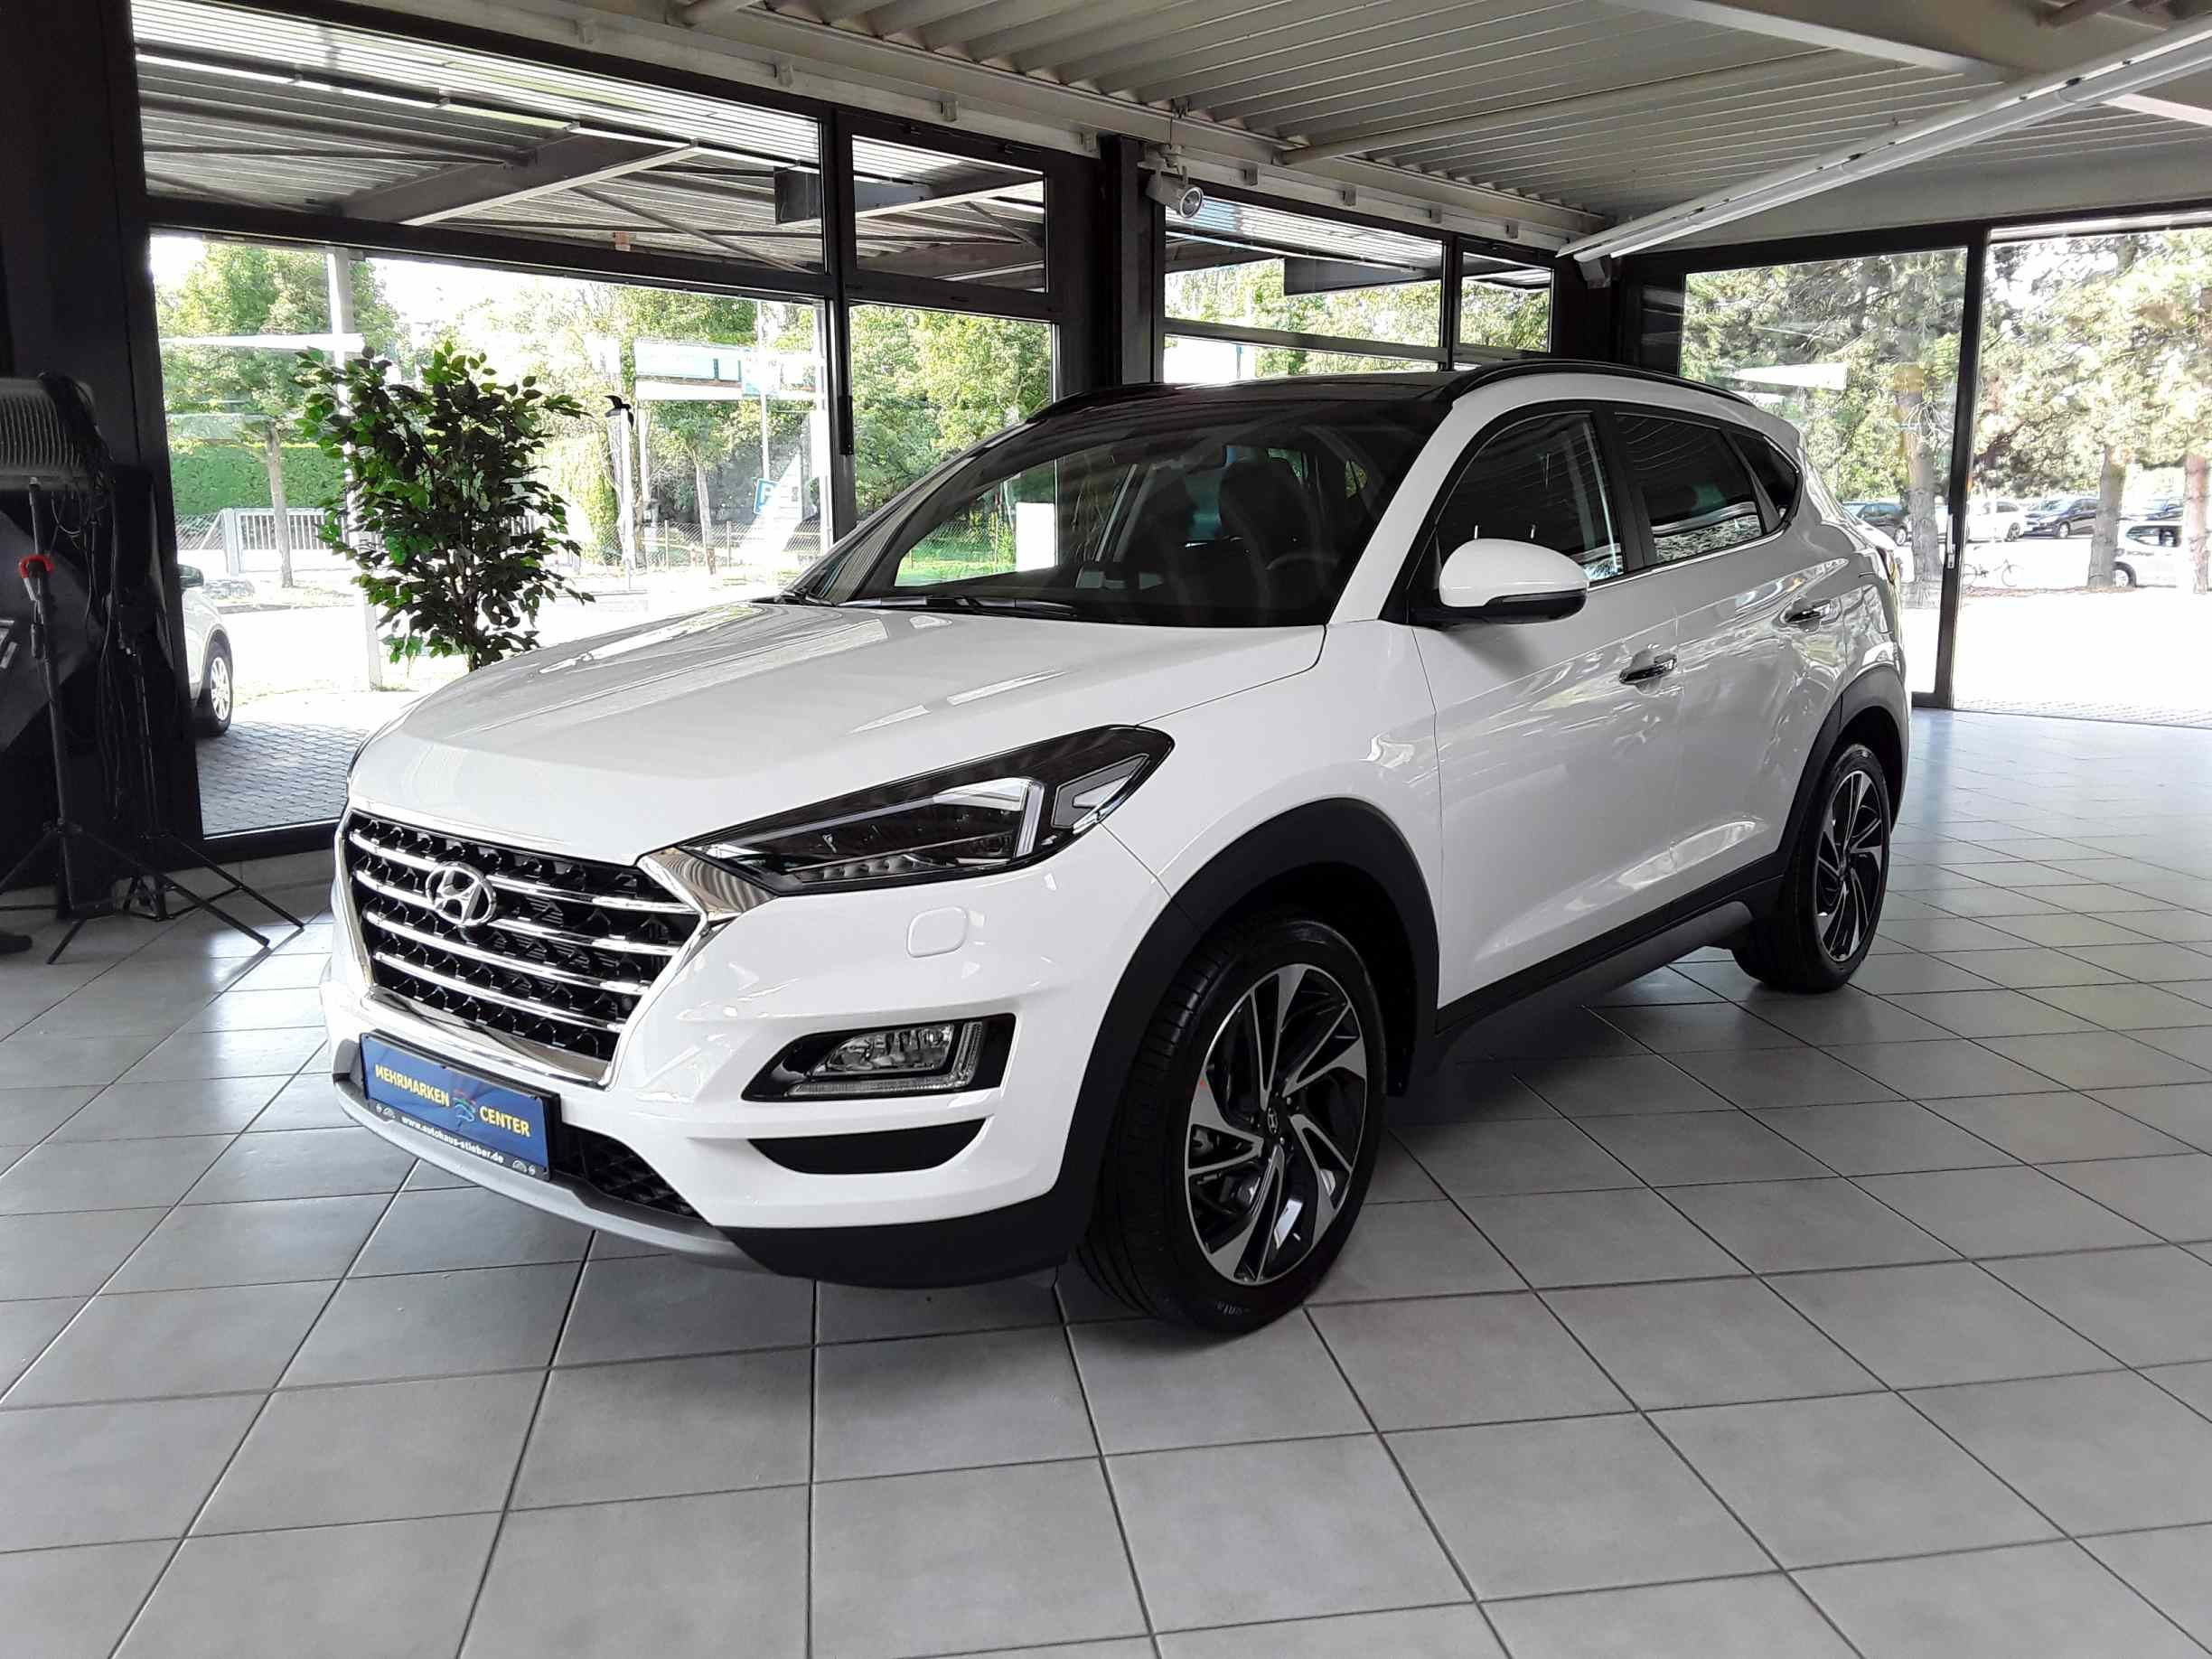 Tucson 2019 Hyundai Check more at